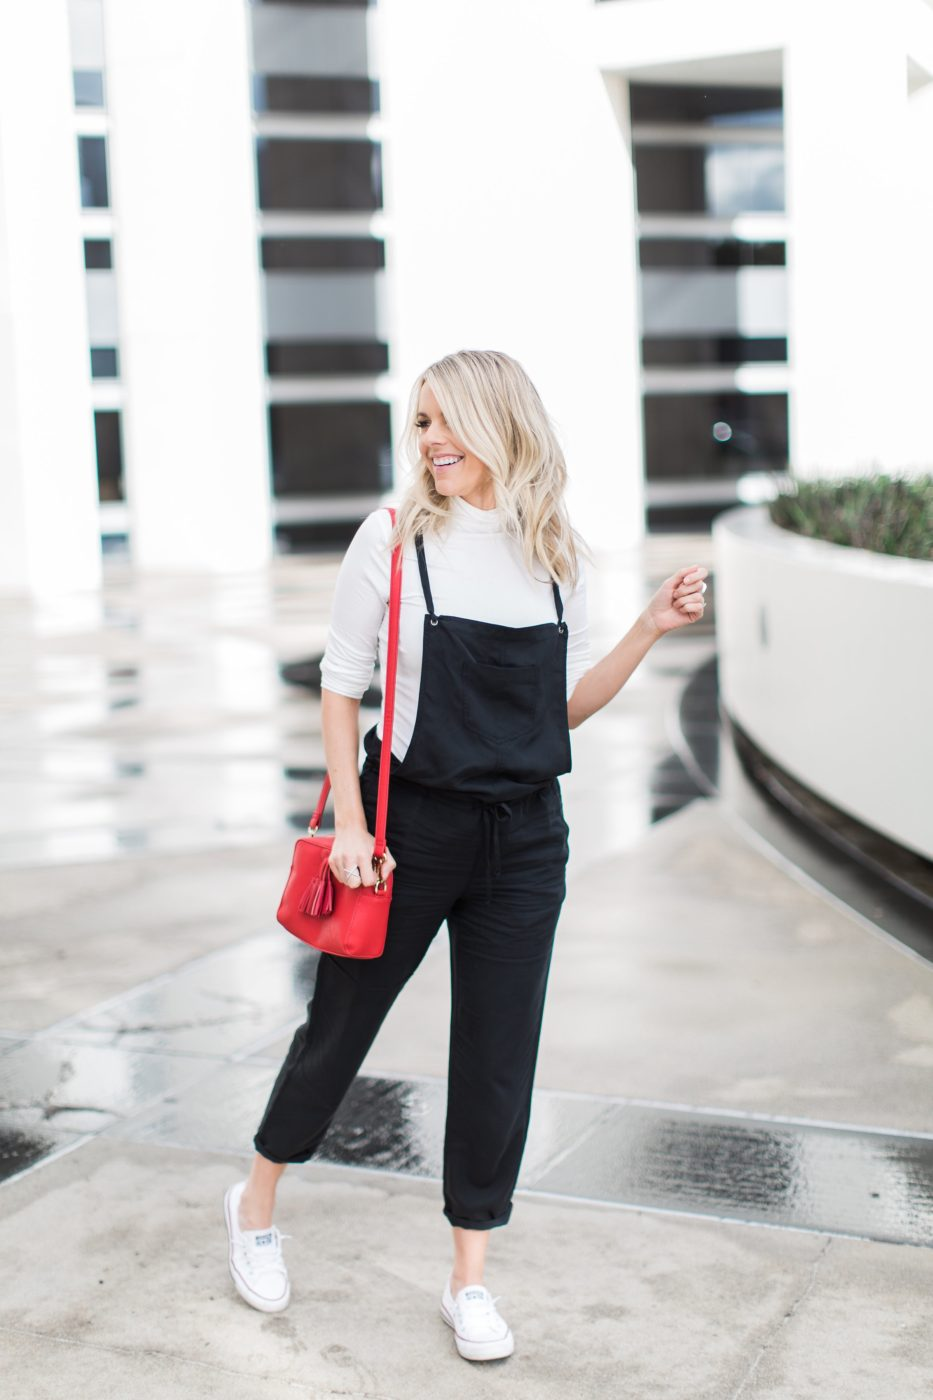 Overalls – Cute and Mom Friendly